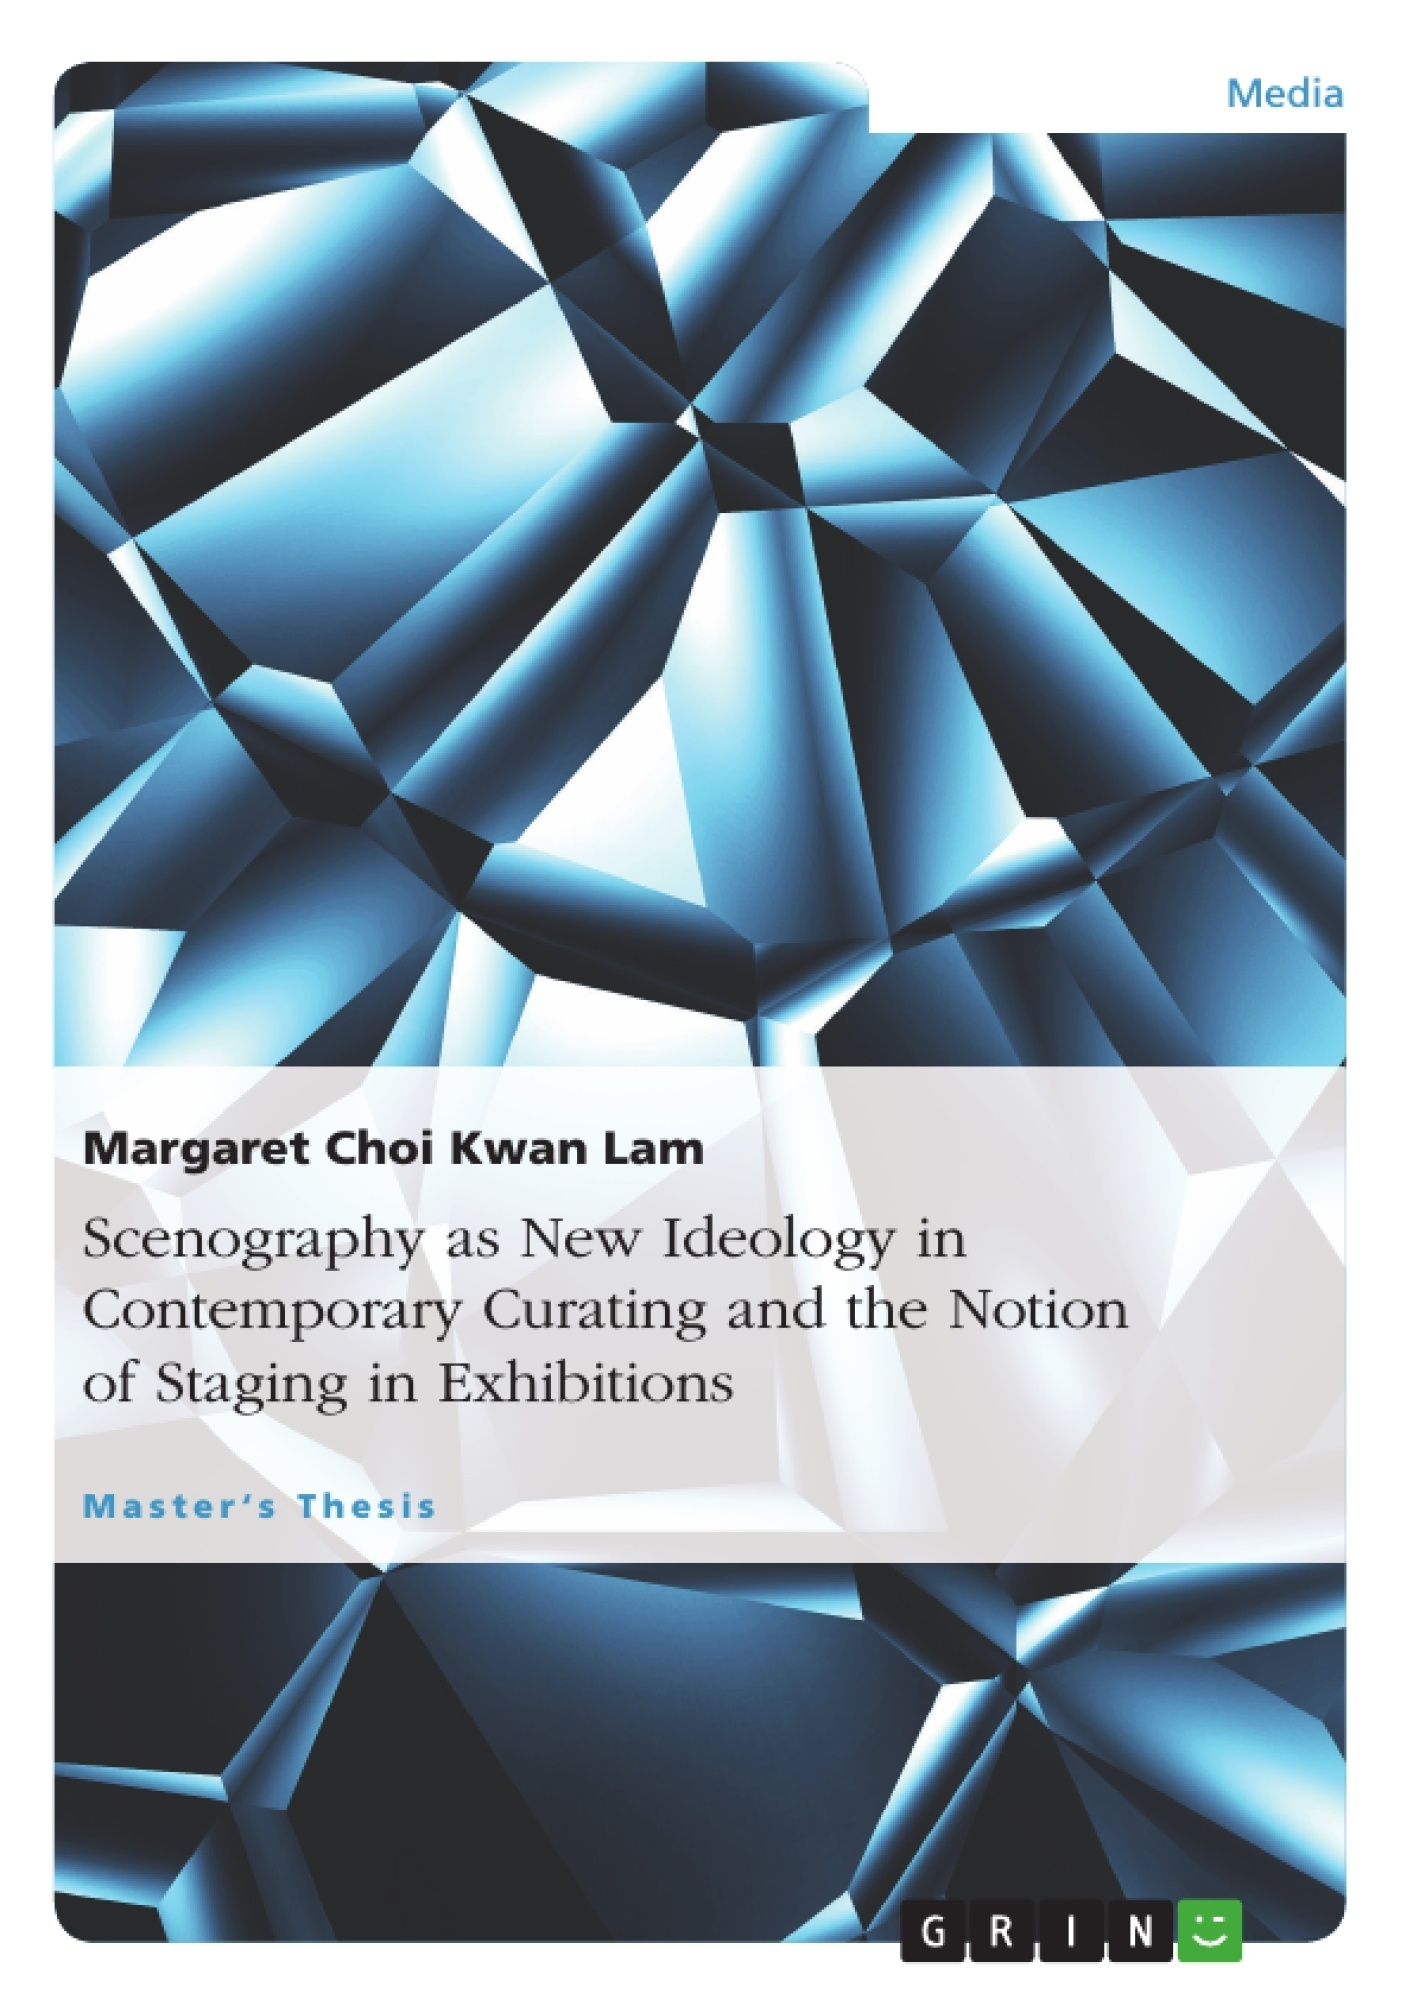 Title: Scenography as New Ideology in Contemporary Curating and the Notion of Staging in Exhibitions